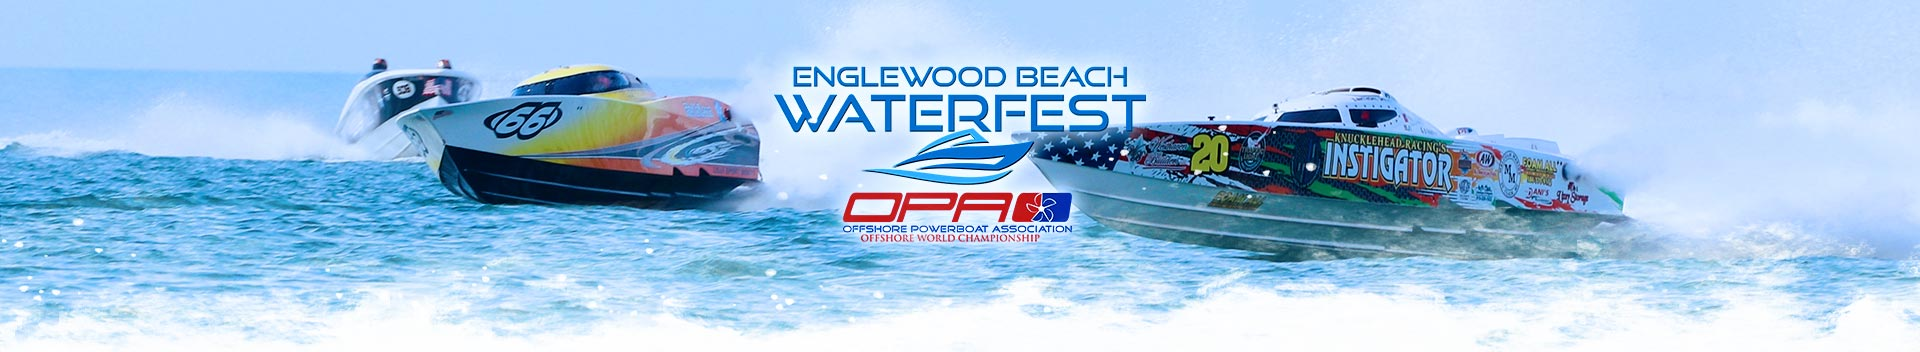 Waterfest and OPA Racing Logos with boats in the background